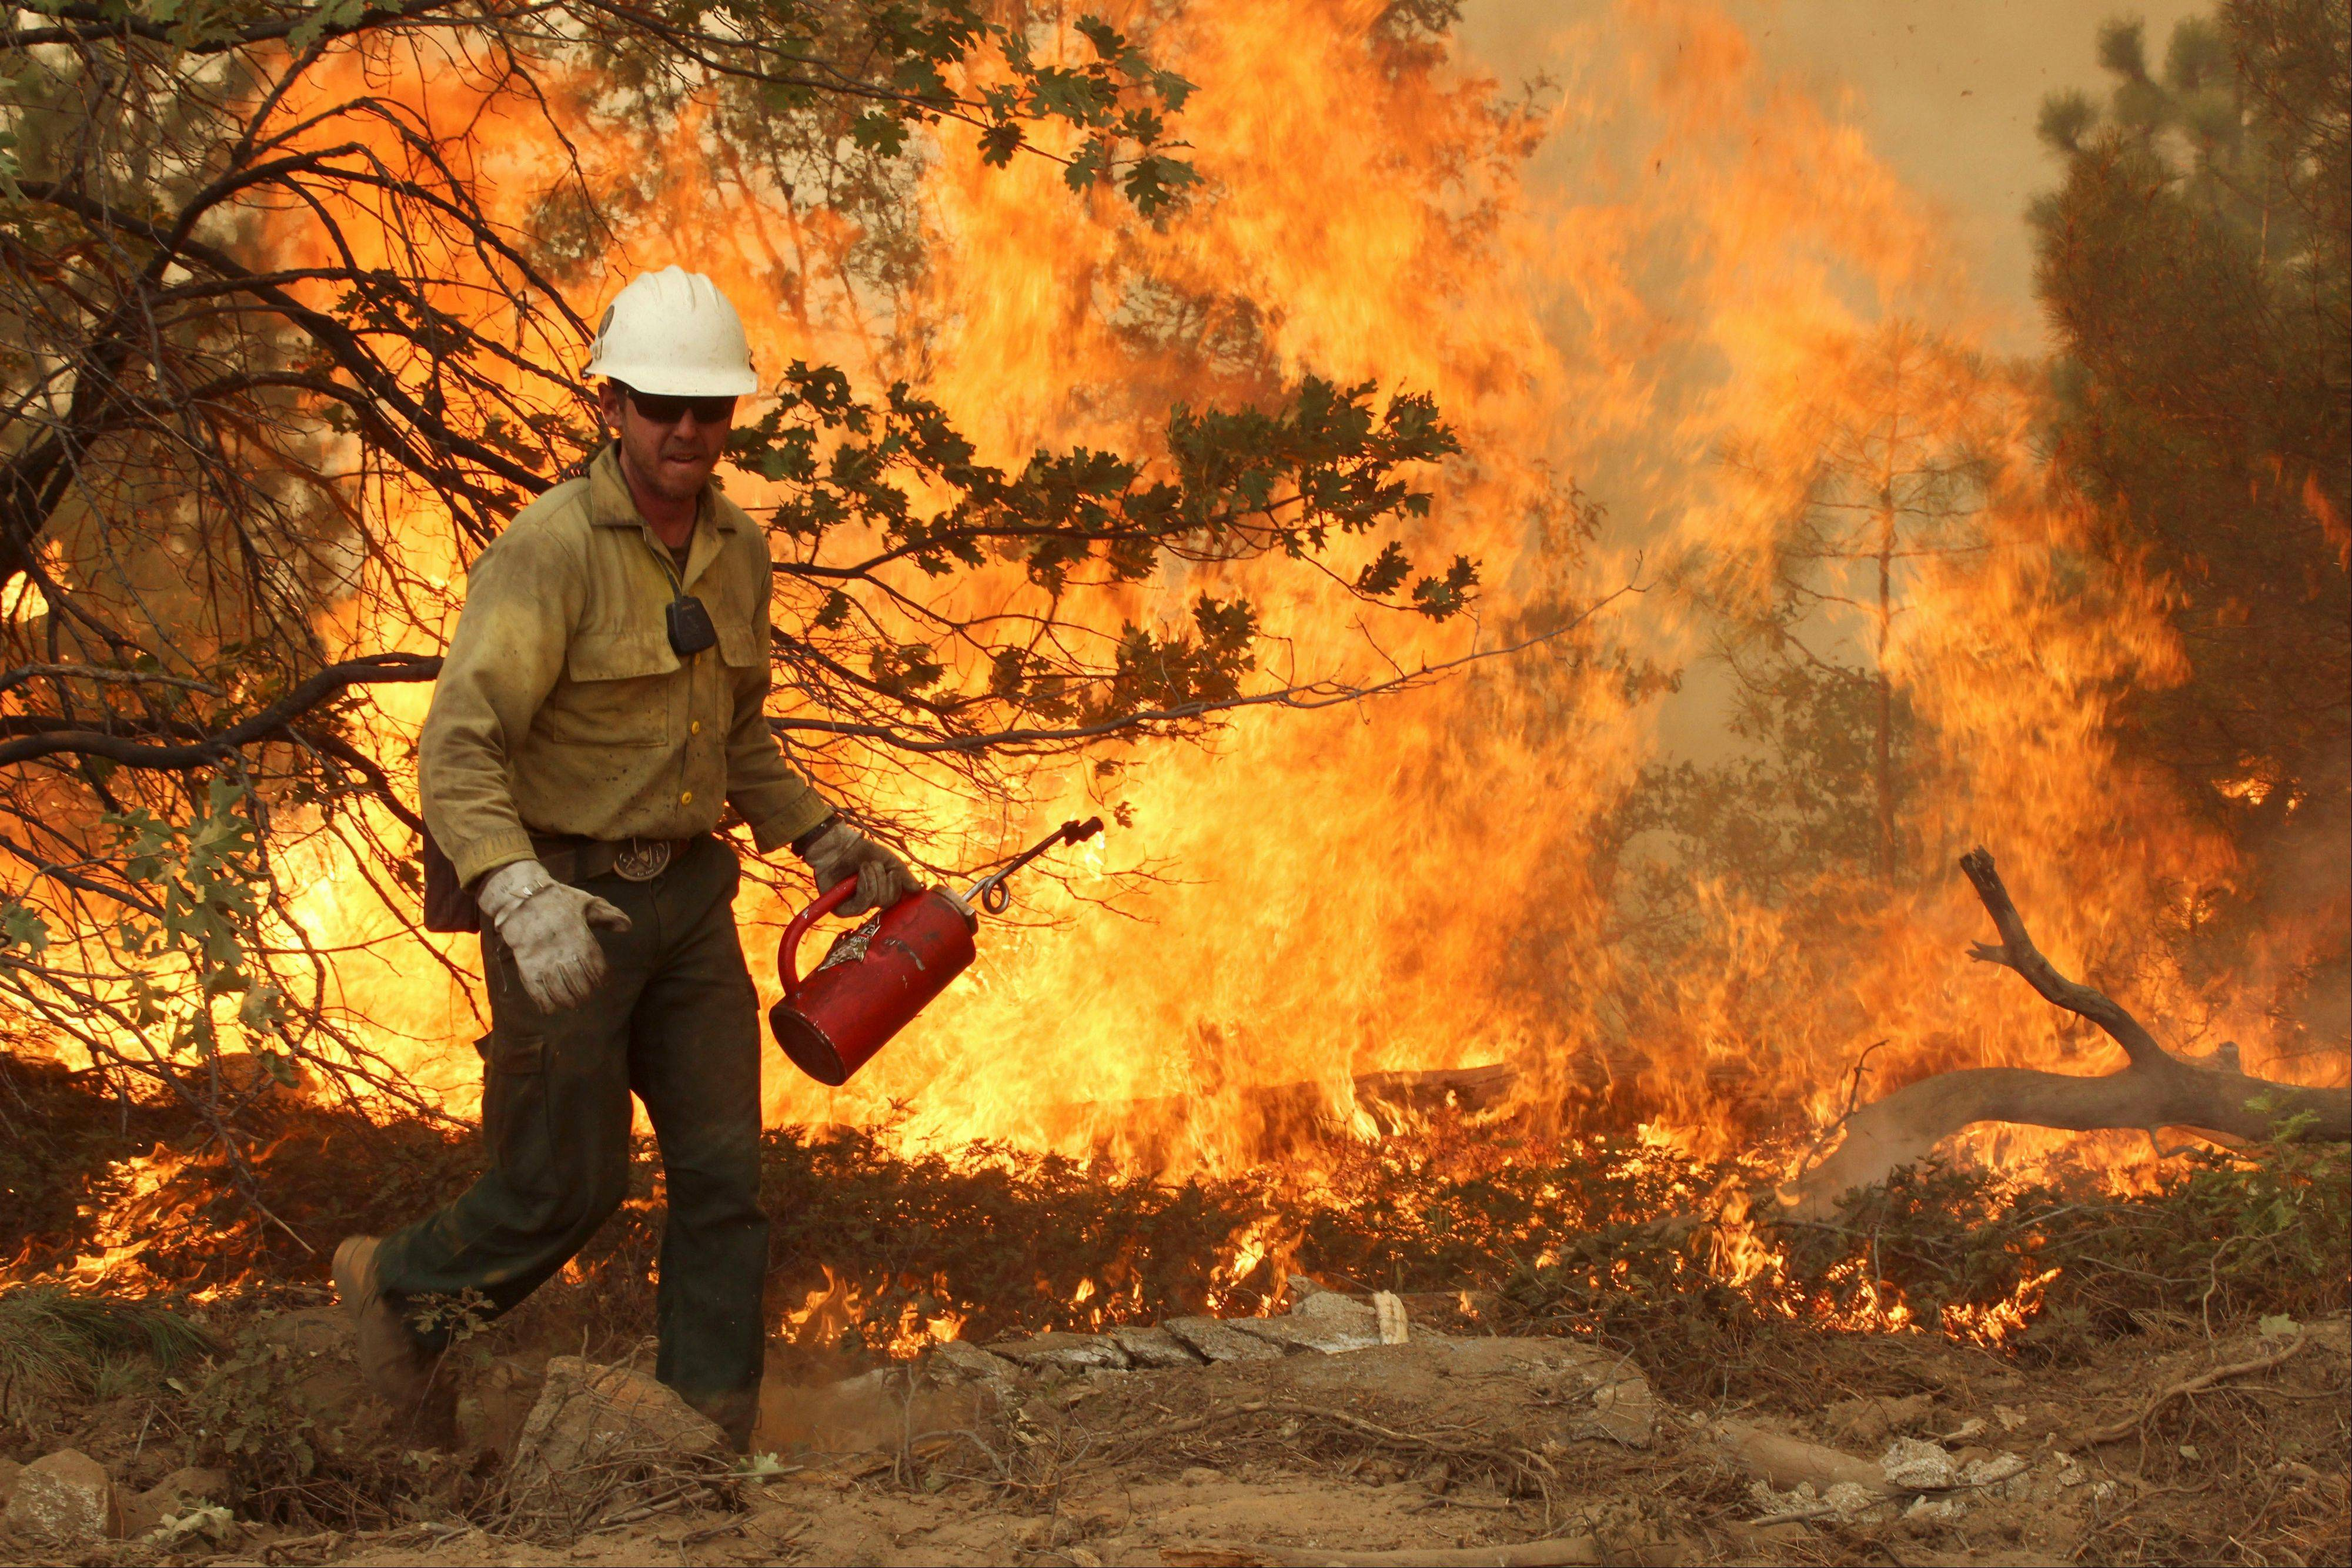 Associated Press/U.S. Forest Service A member of the BLM Silver State Hotshot crew uses a drip torch to set back fires on the southern flank of the Rim Fire in California.